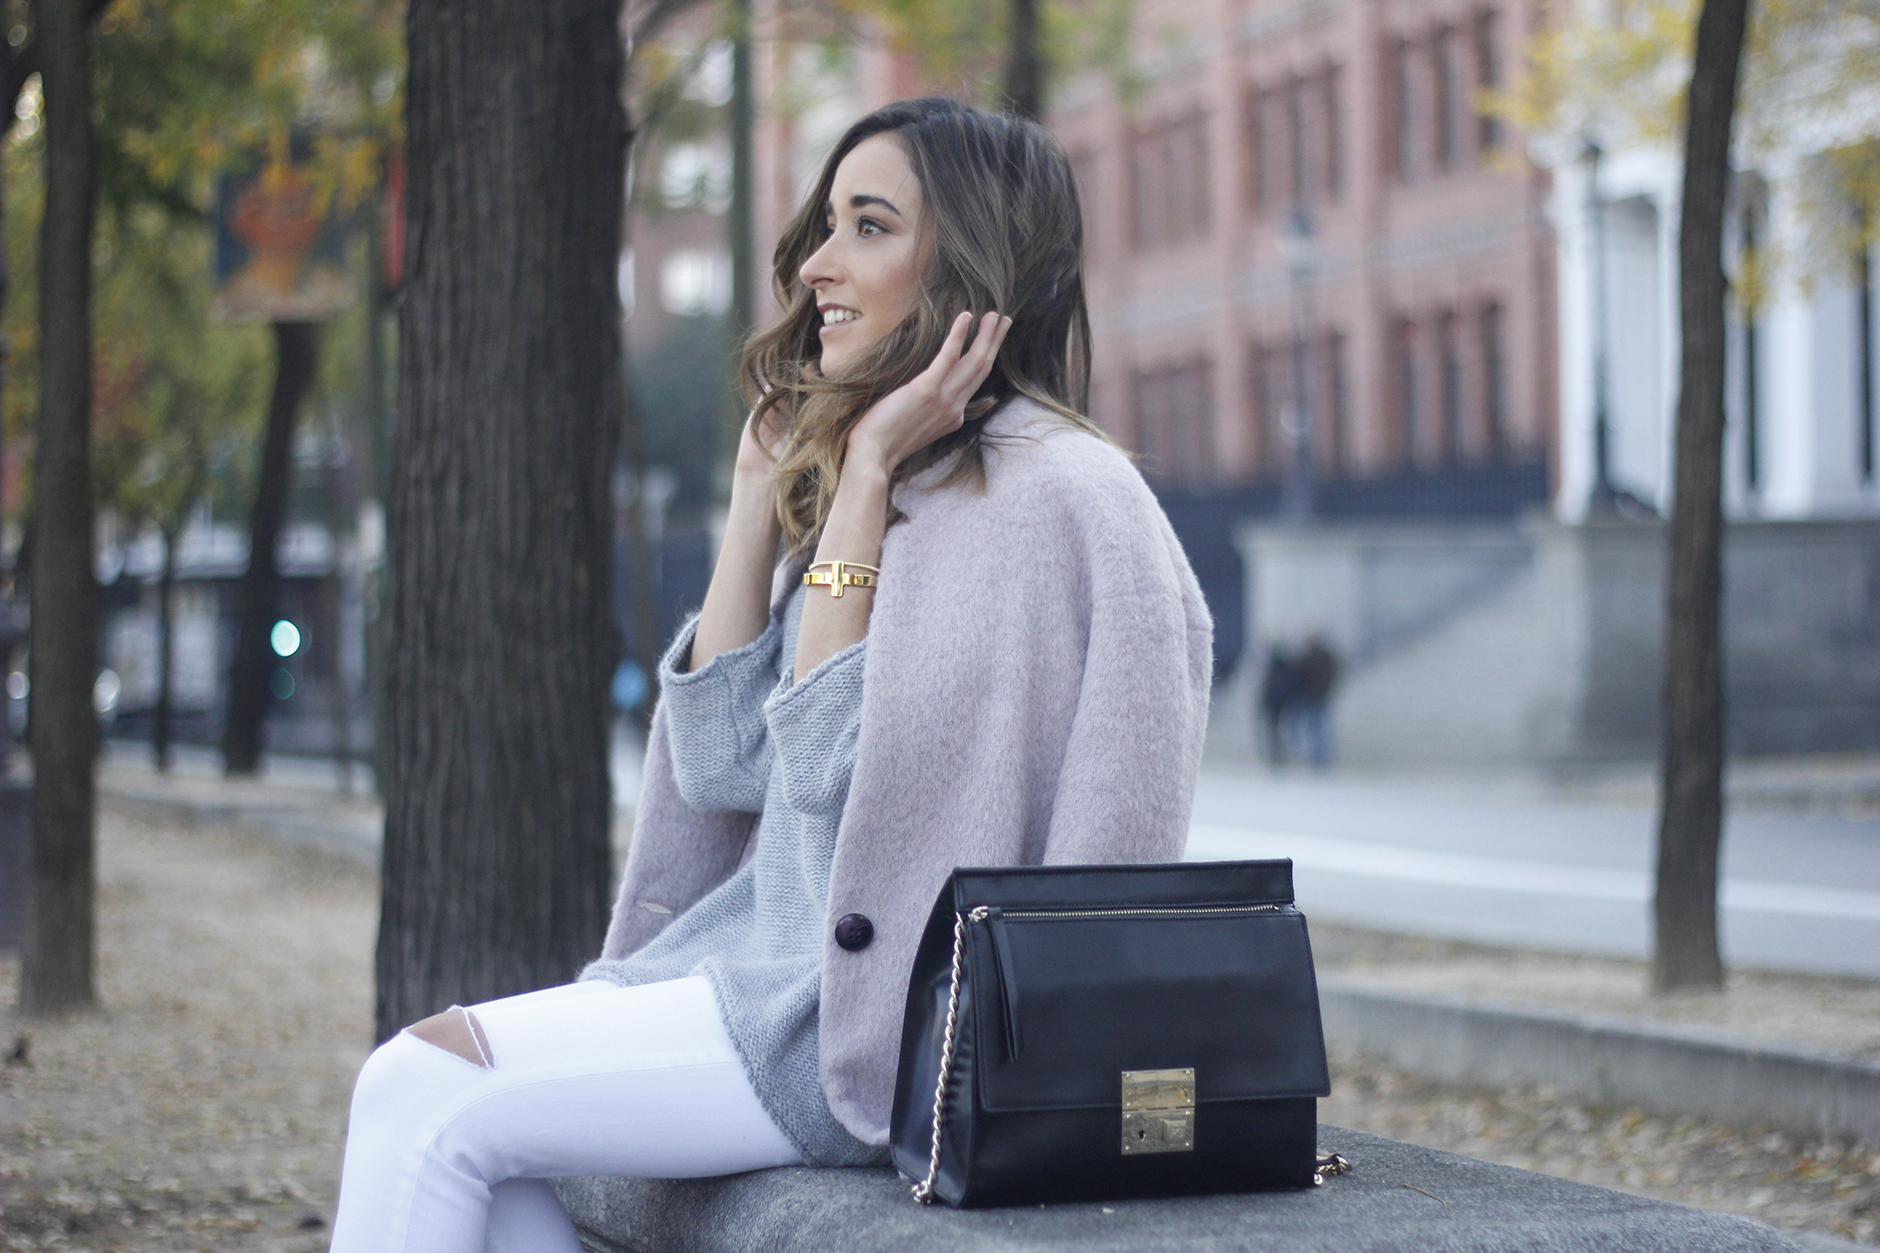 Tintoretto Pink Coat white jeans grey sweater outfit23